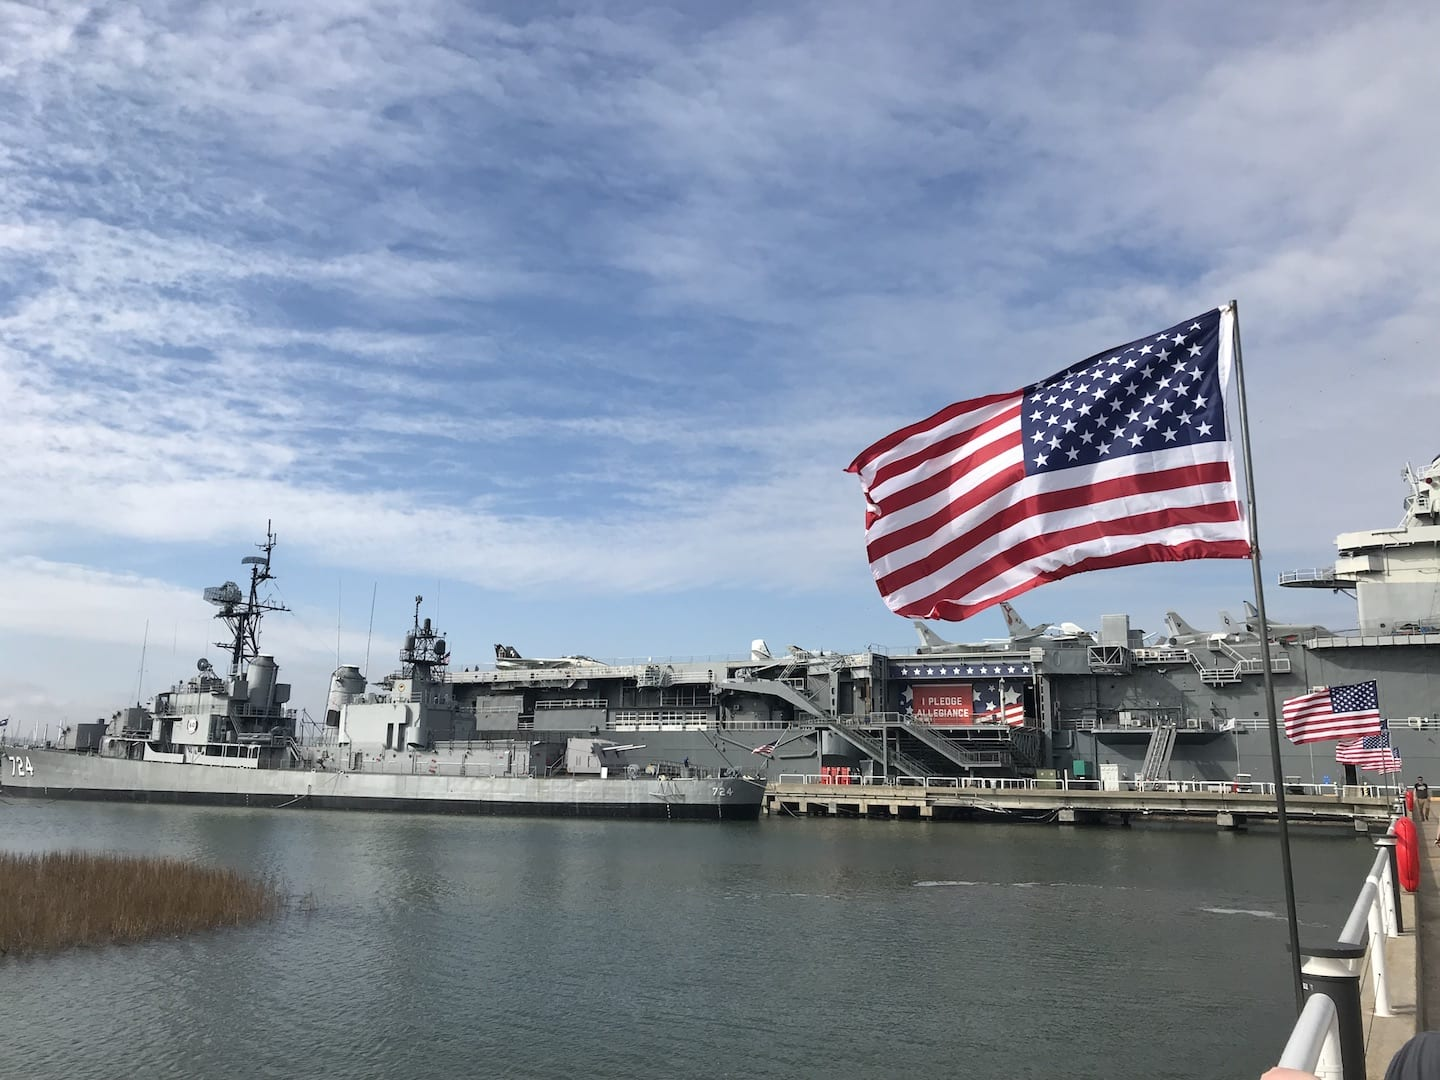 USS Laffey & Yorktown Patriots Point